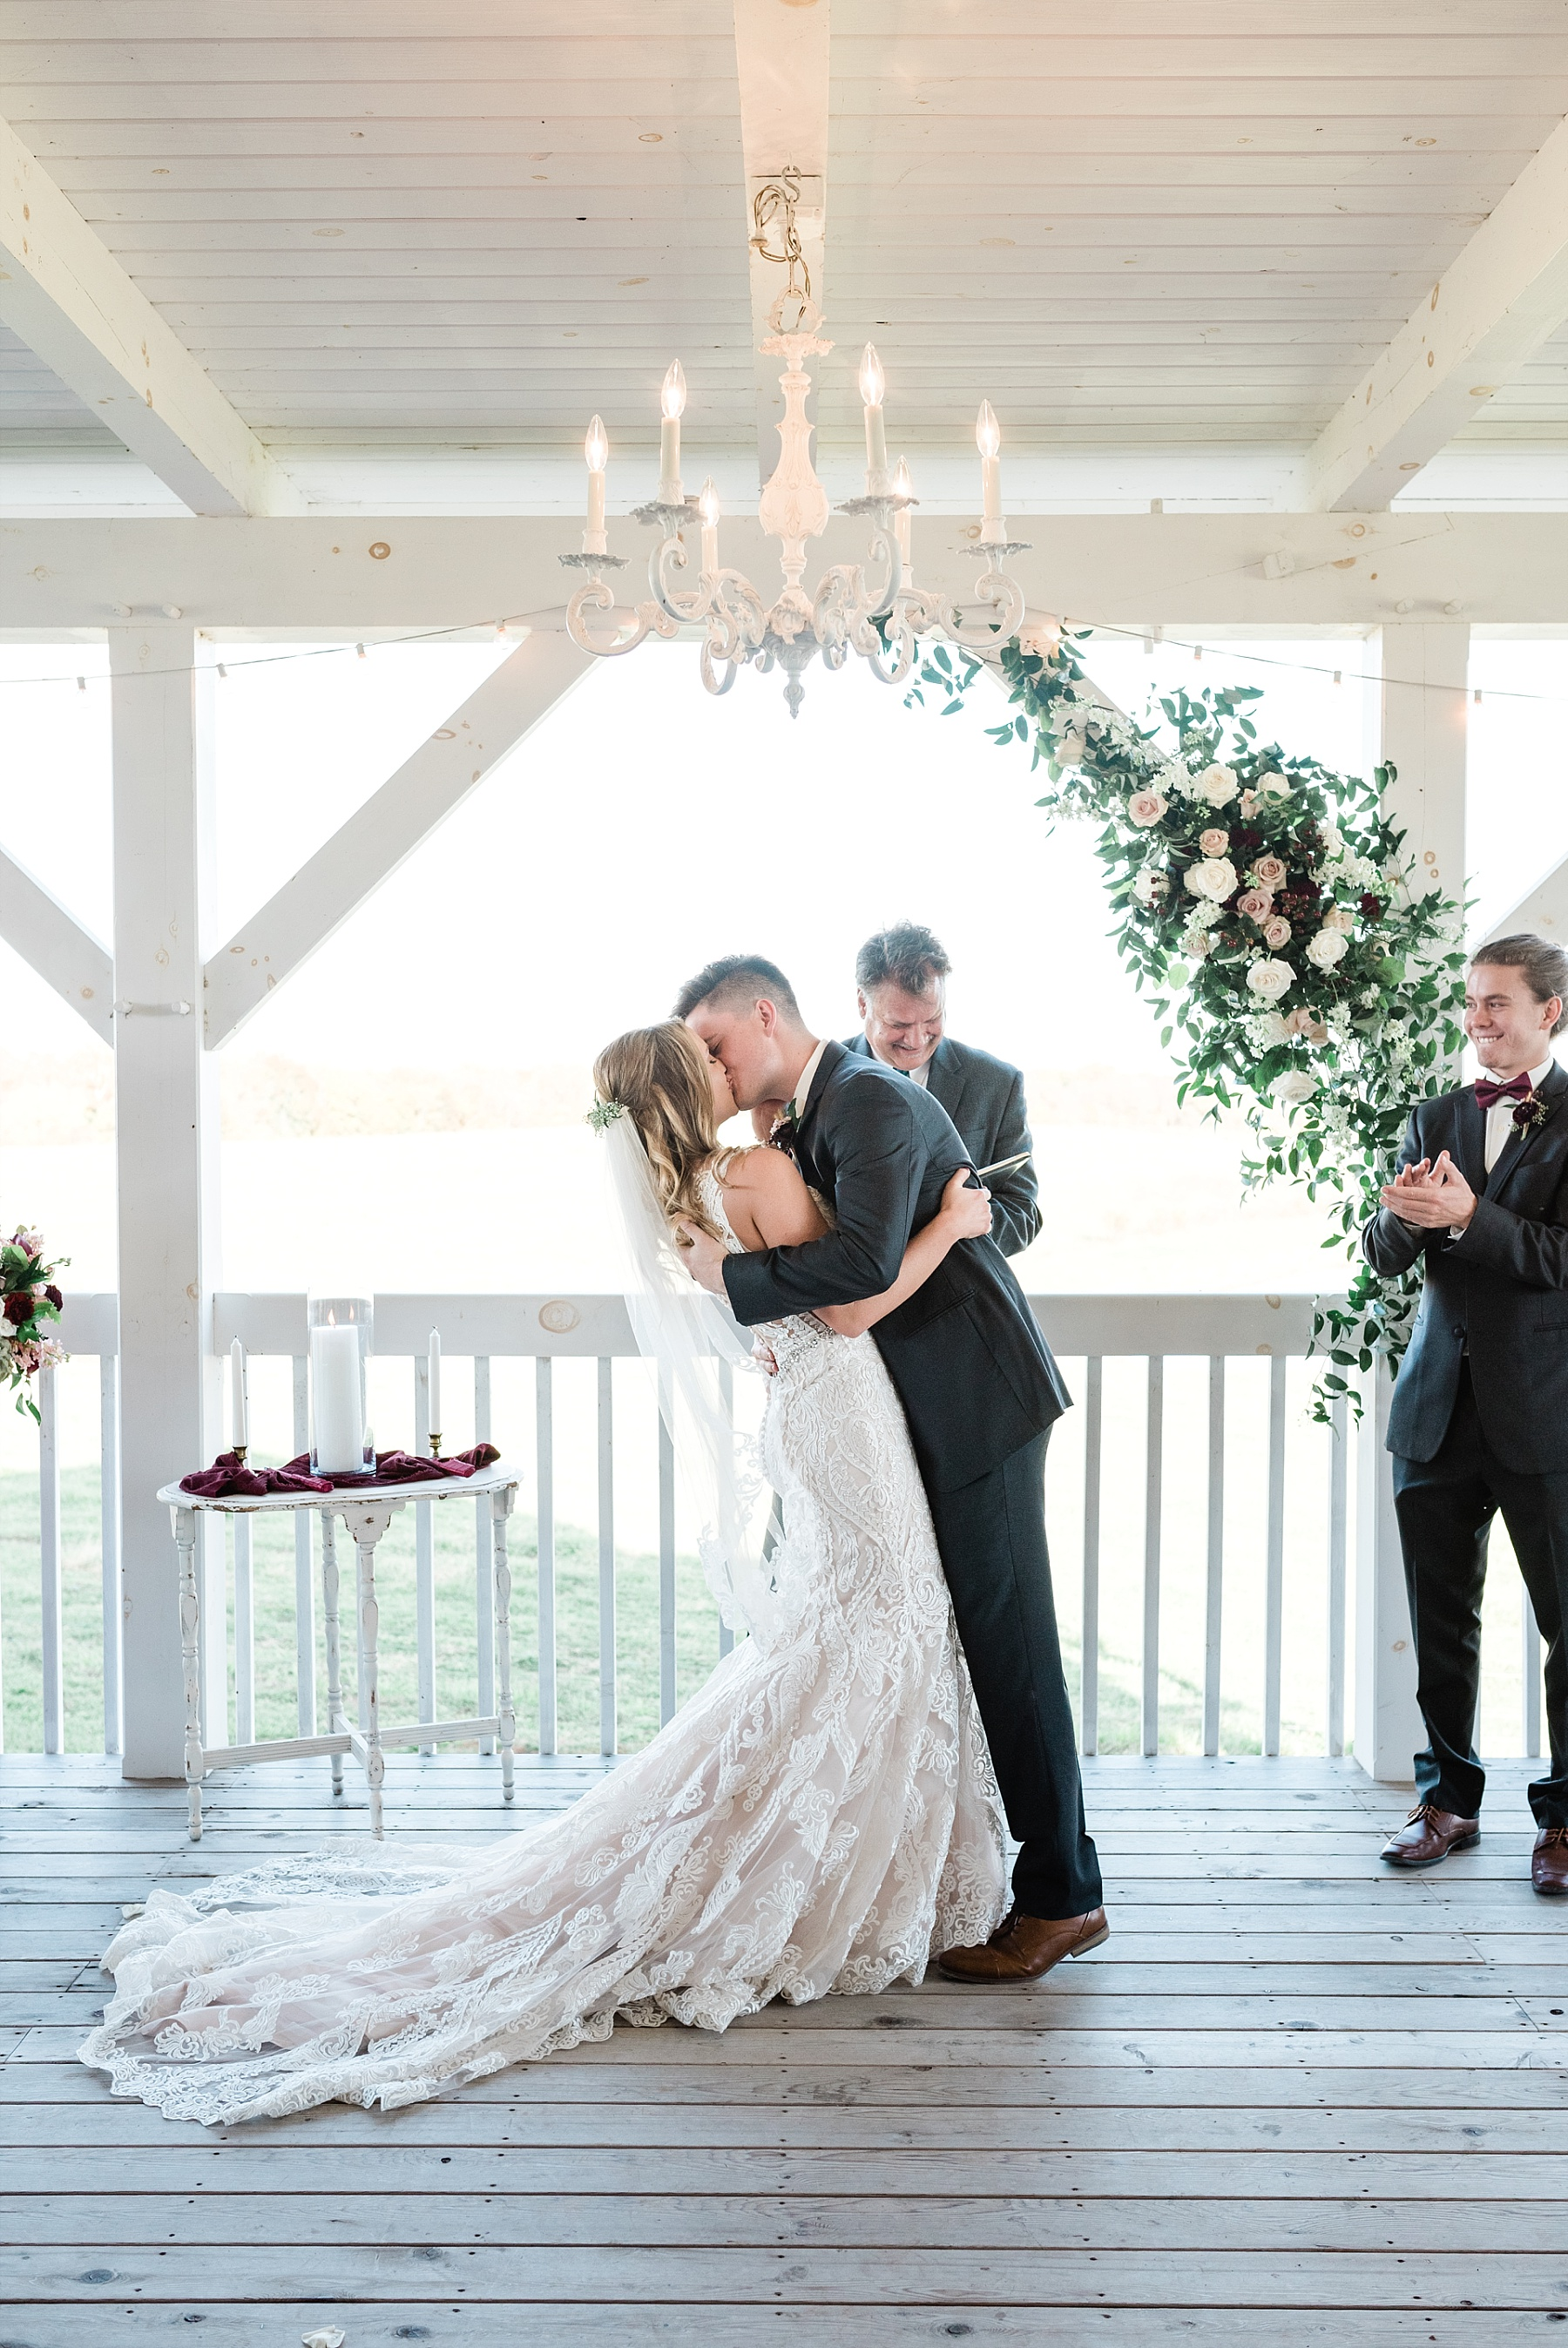 Golden Autumn Outdoor Wedding with Ivory, Bergundy, and Blush Color Palette at Blue Bell Farms  by Kelsi Kliethermes Photography_0055.jpg